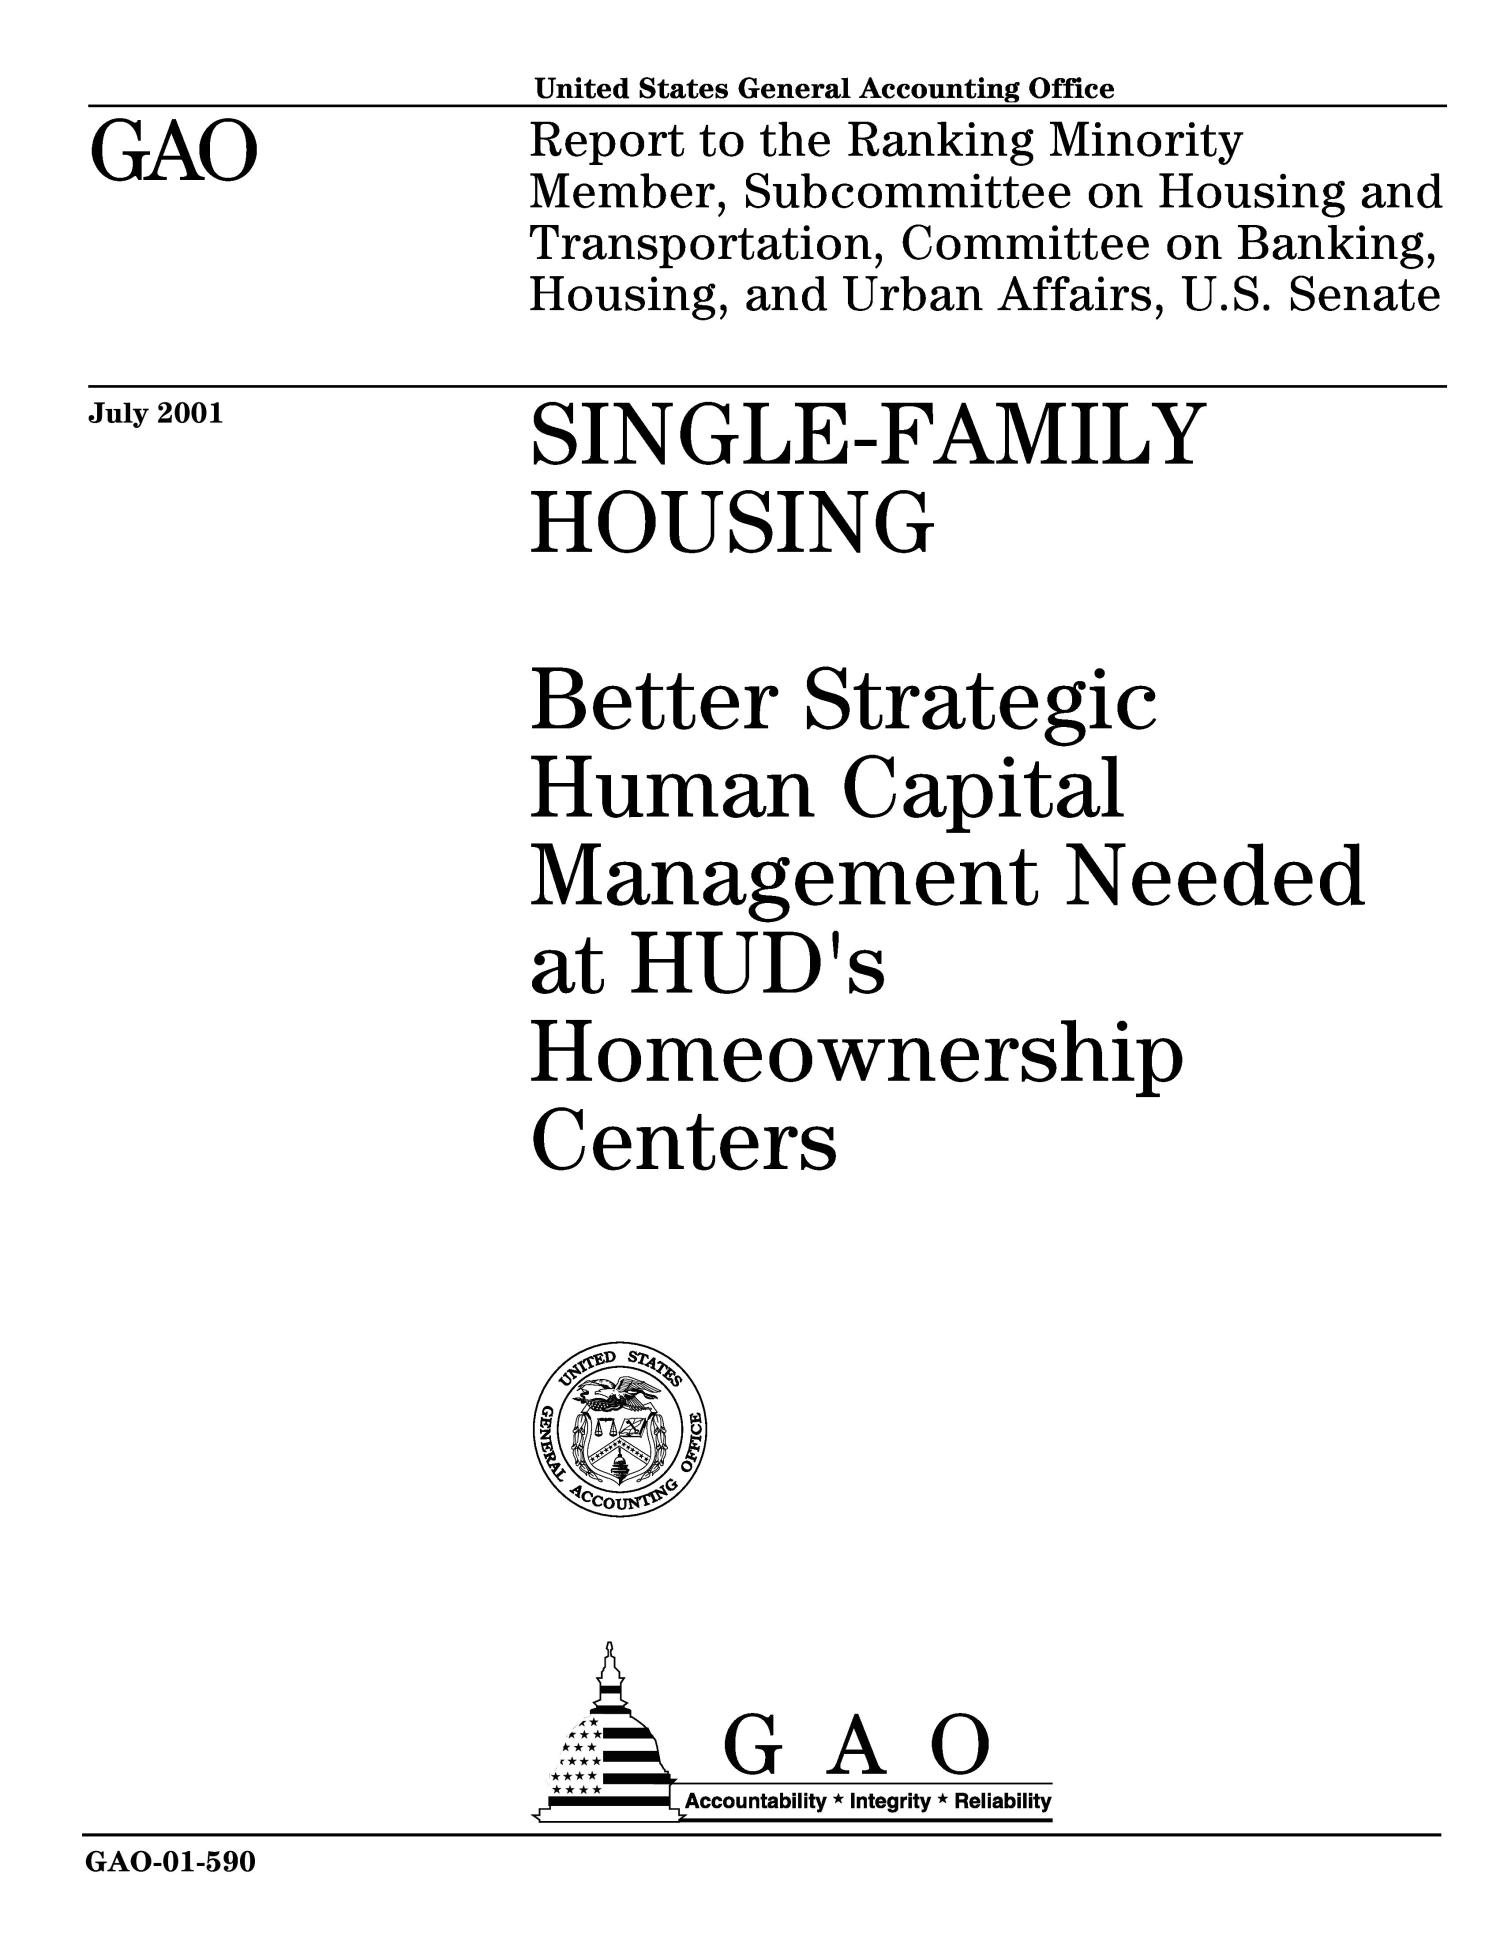 Single-Family Housing: Better Strategic Human Capital Management Needed at HUD's Homeownership Centers                                                                                                      [Sequence #]: 1 of 58